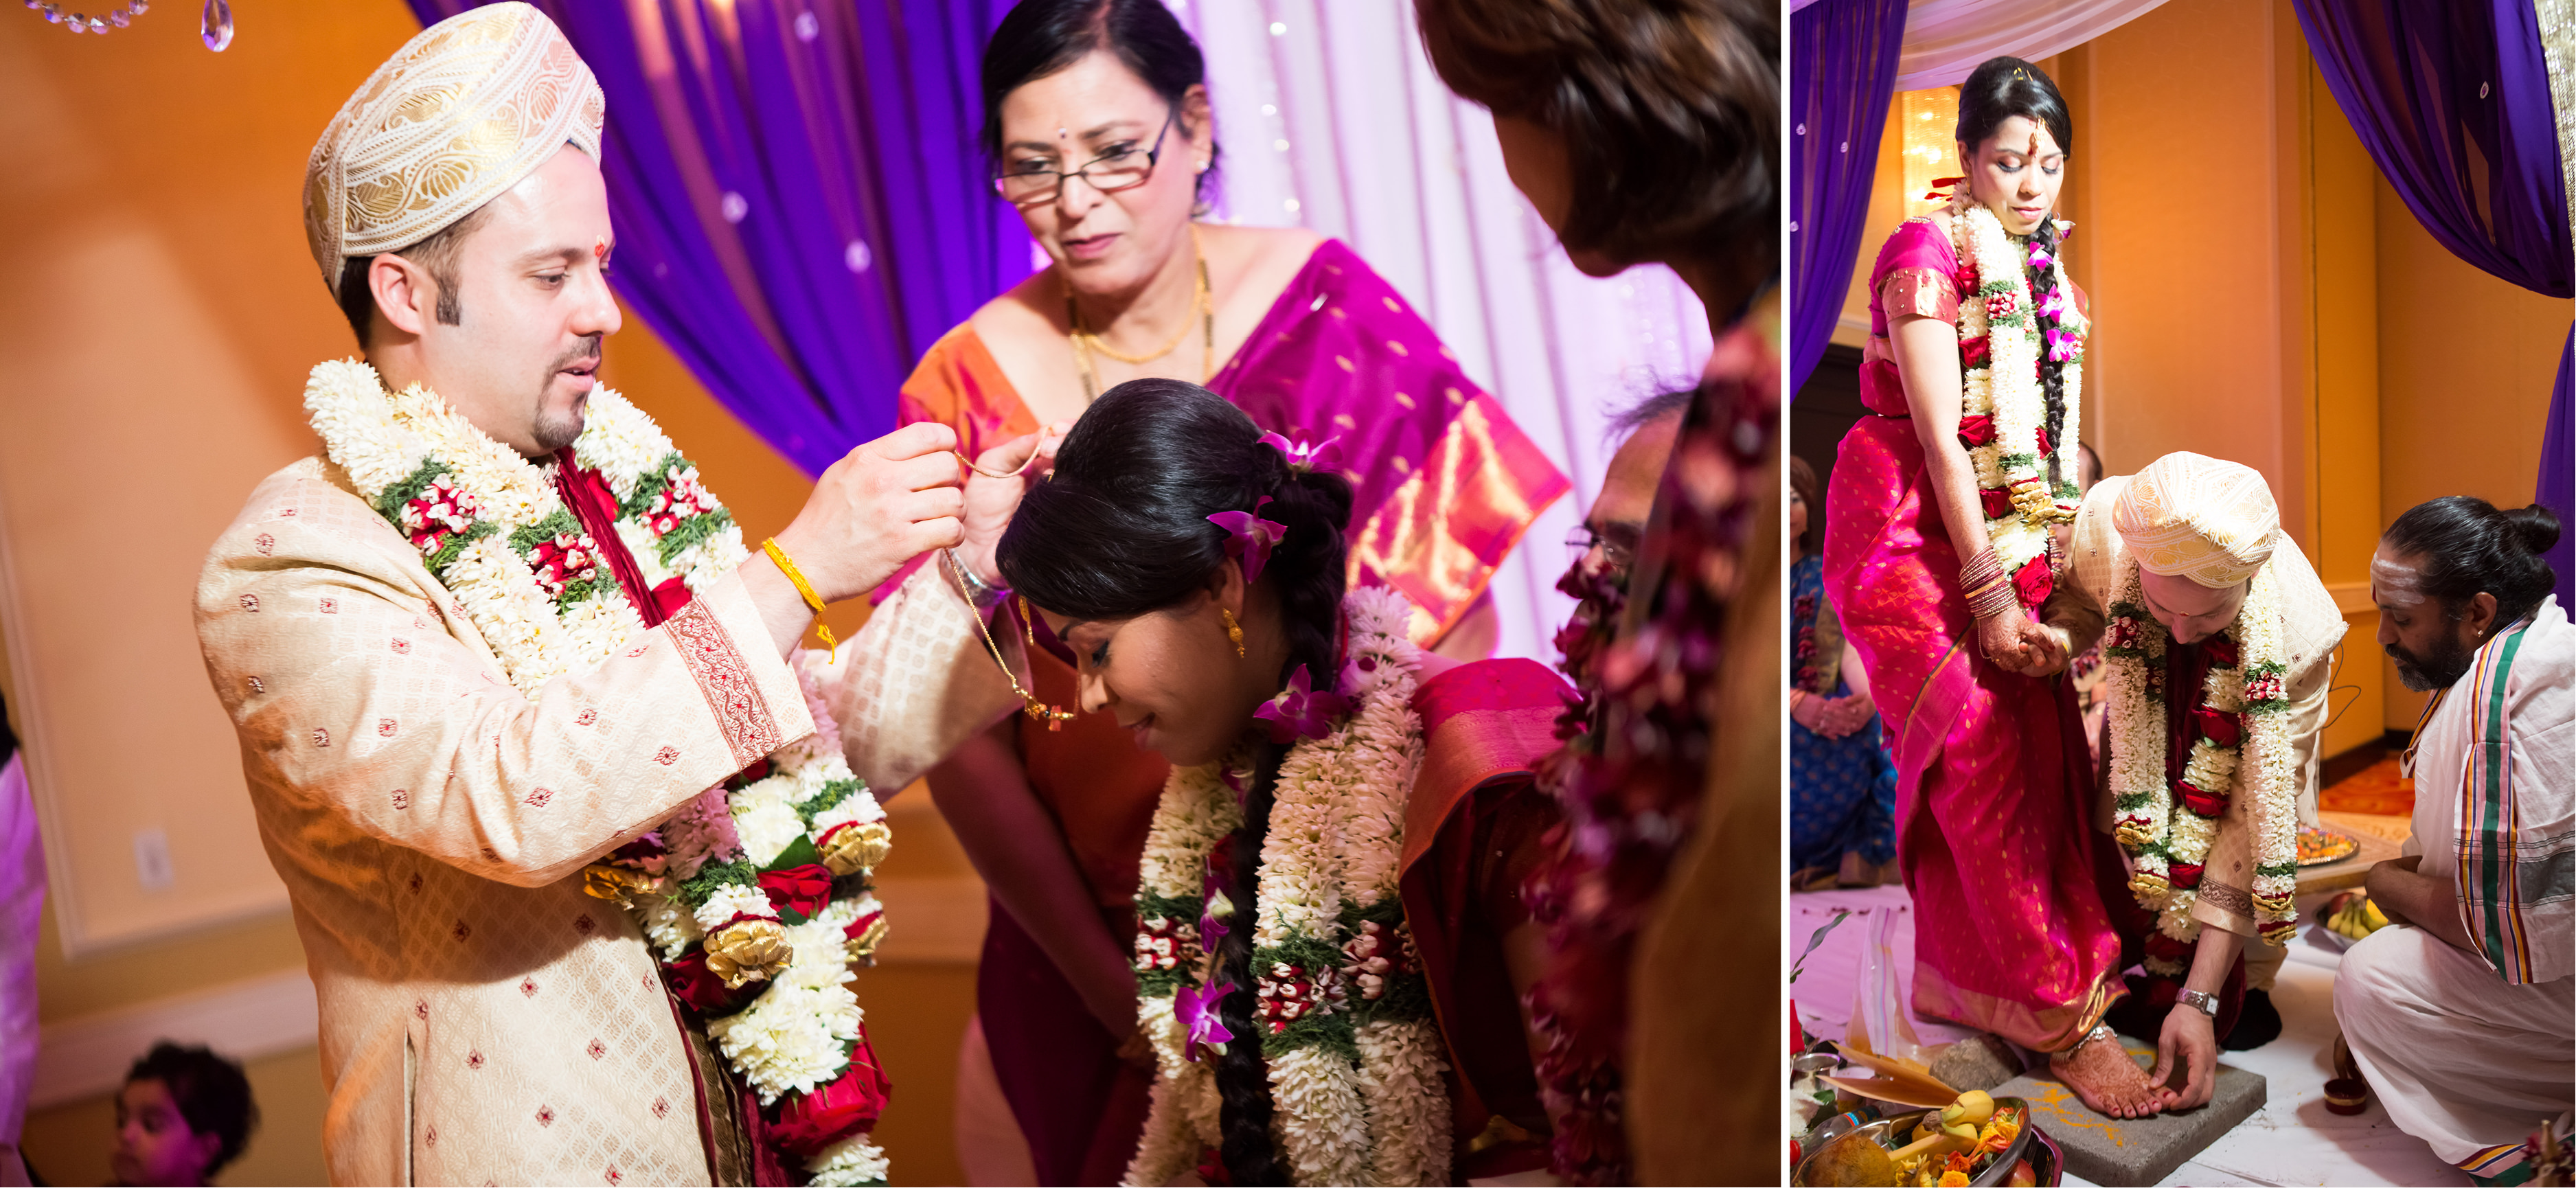 Emma_cleary_photography Indian Wedding19